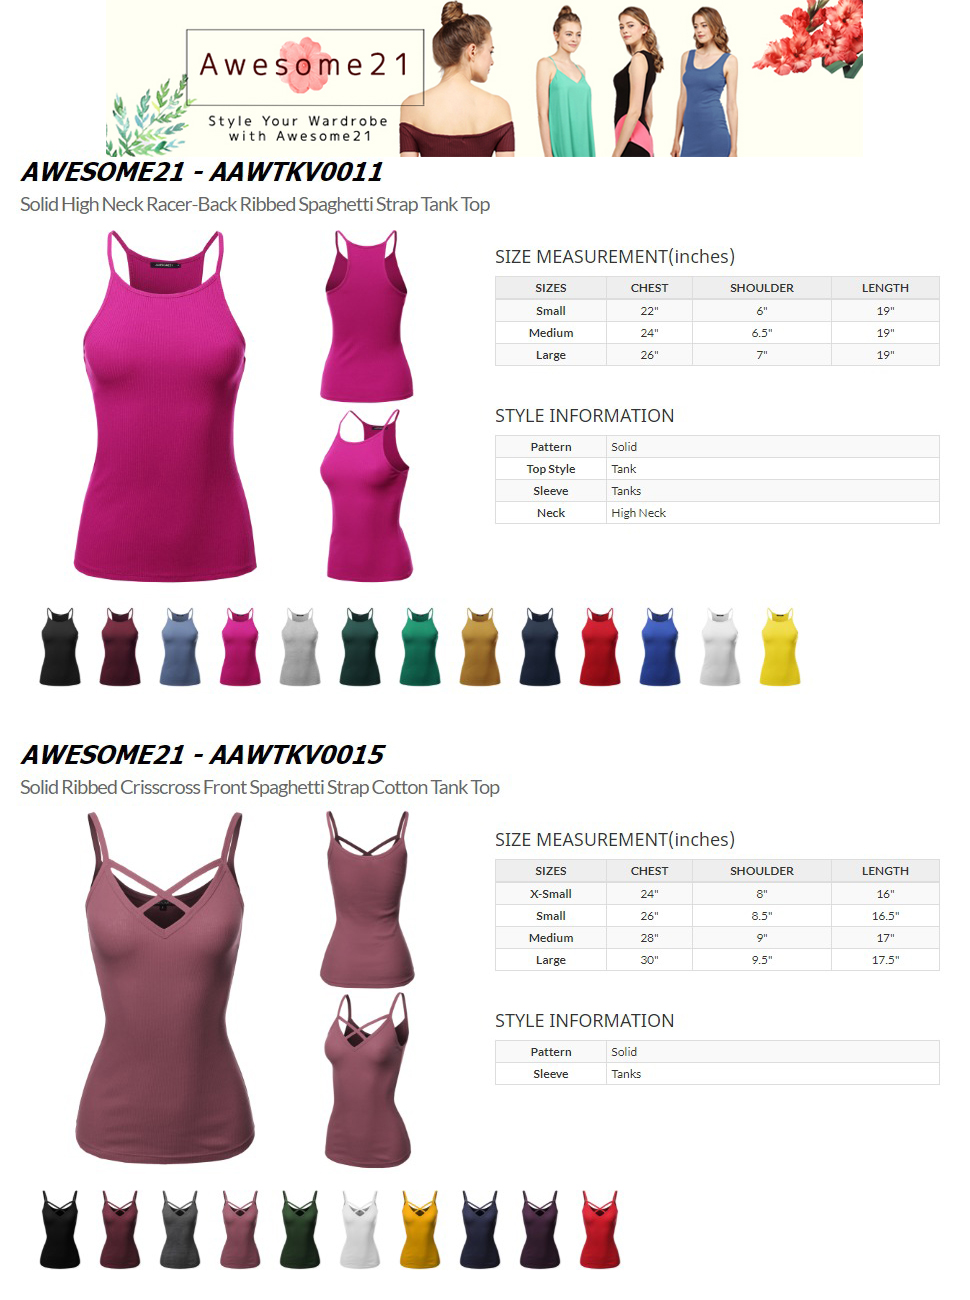 a6a1667253 Awesome21 Women's Solid High Neck Racer-Back Ribbed Spaghetti Strap Tank Top.  Description. AAWTKV0011 AAWTKV0015. Awesome21